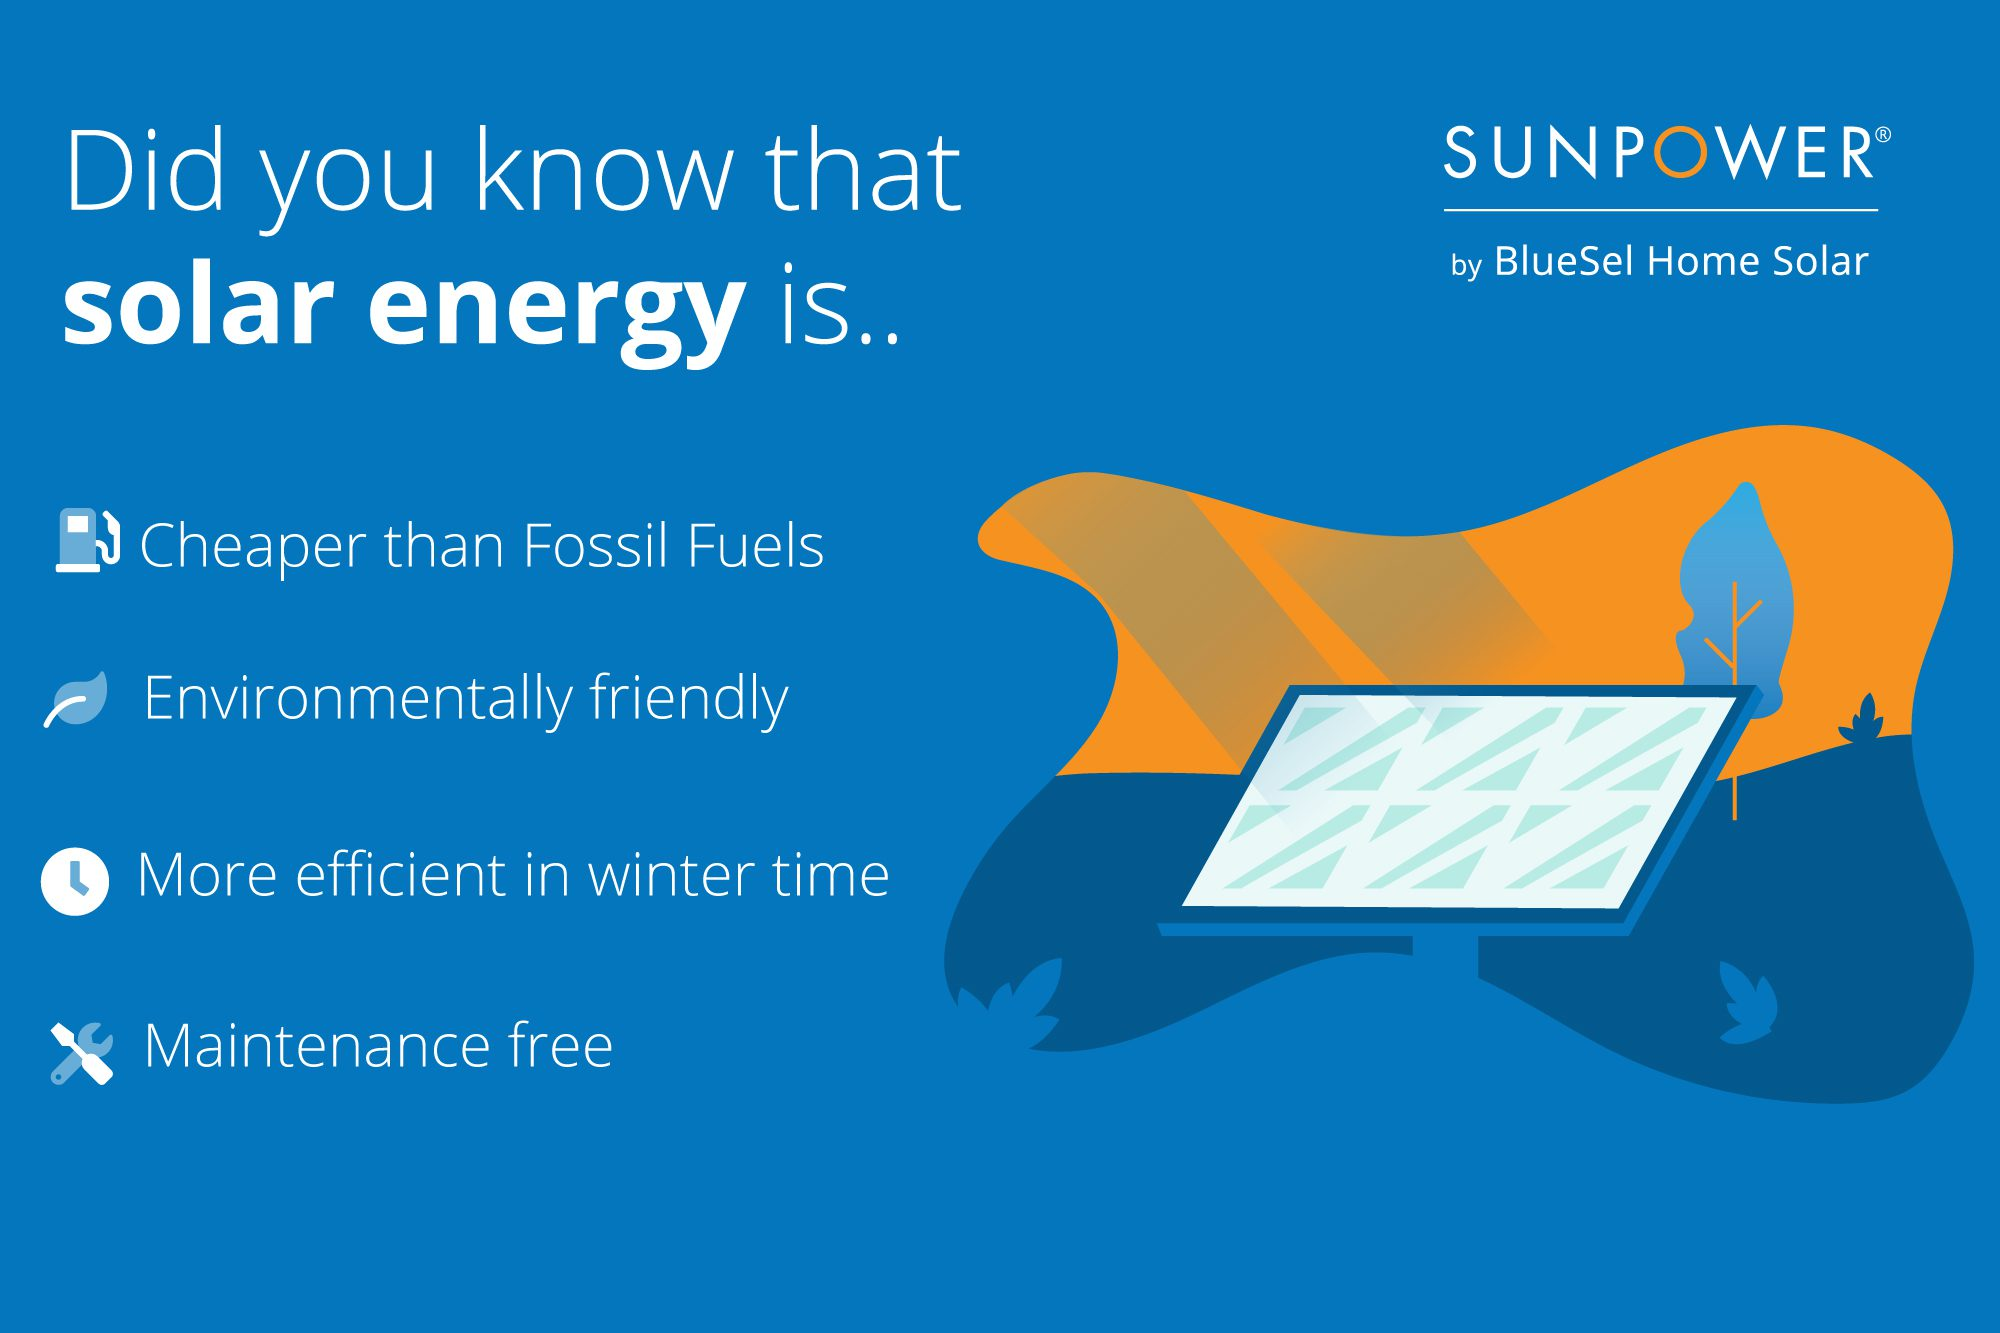 Did you know that solar energy is...